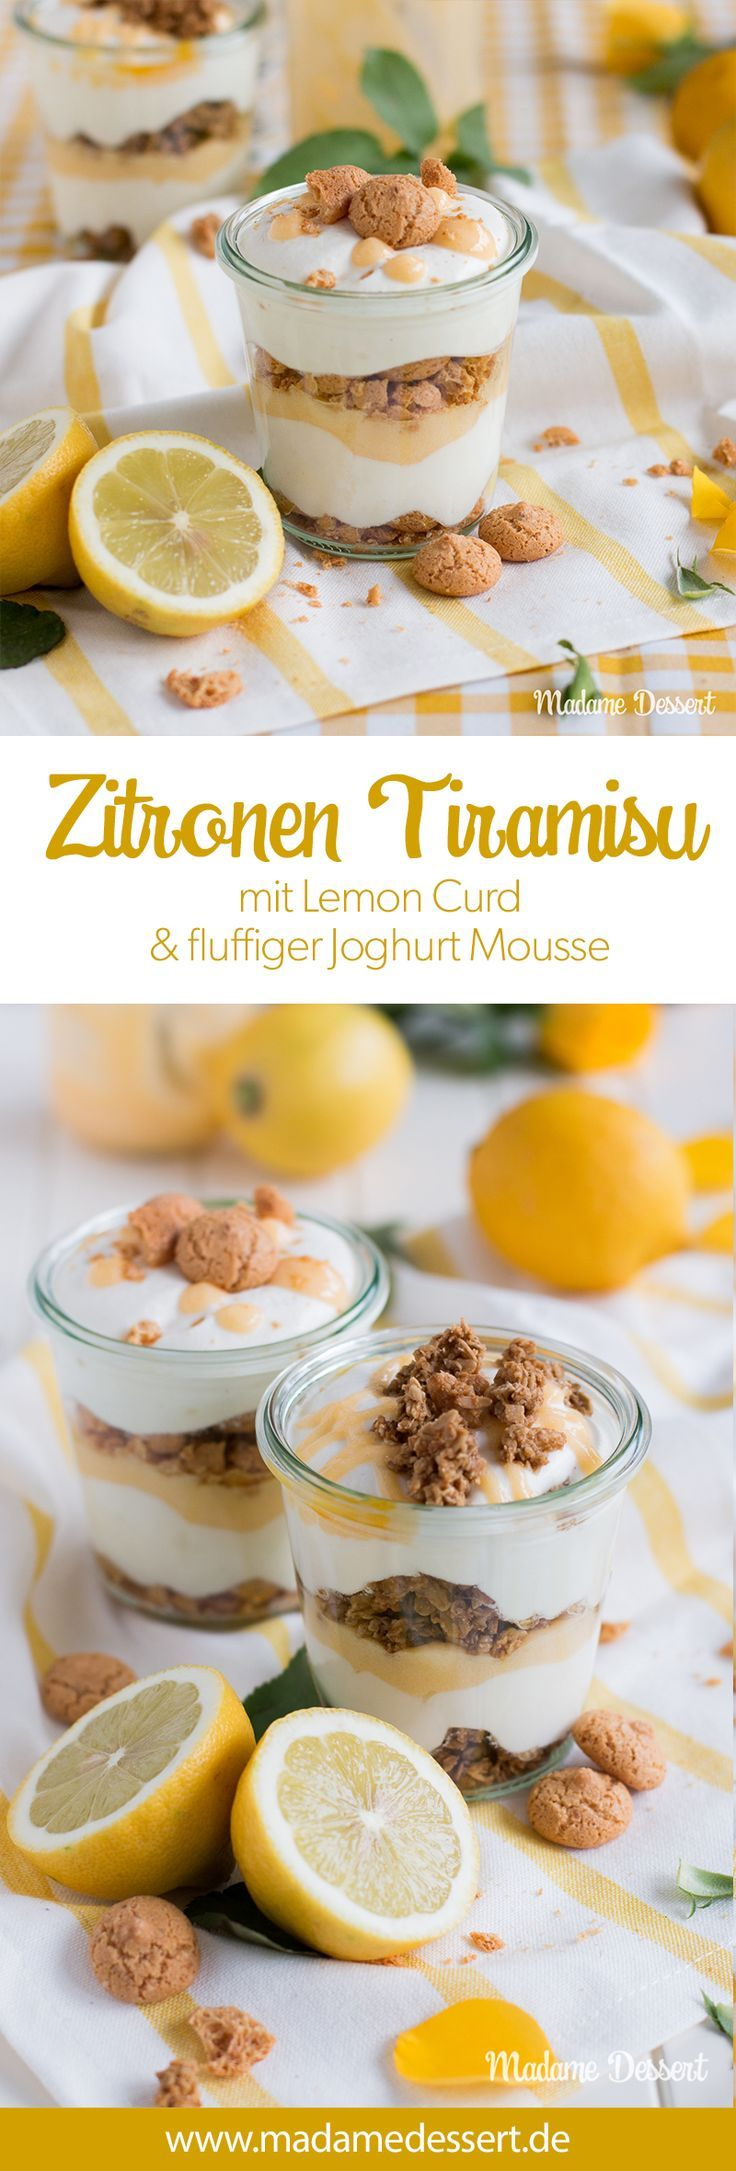 zitronen tiramisu mit lemon curd joghurt mousse dessert im glas leckere rezepte ideen. Black Bedroom Furniture Sets. Home Design Ideas